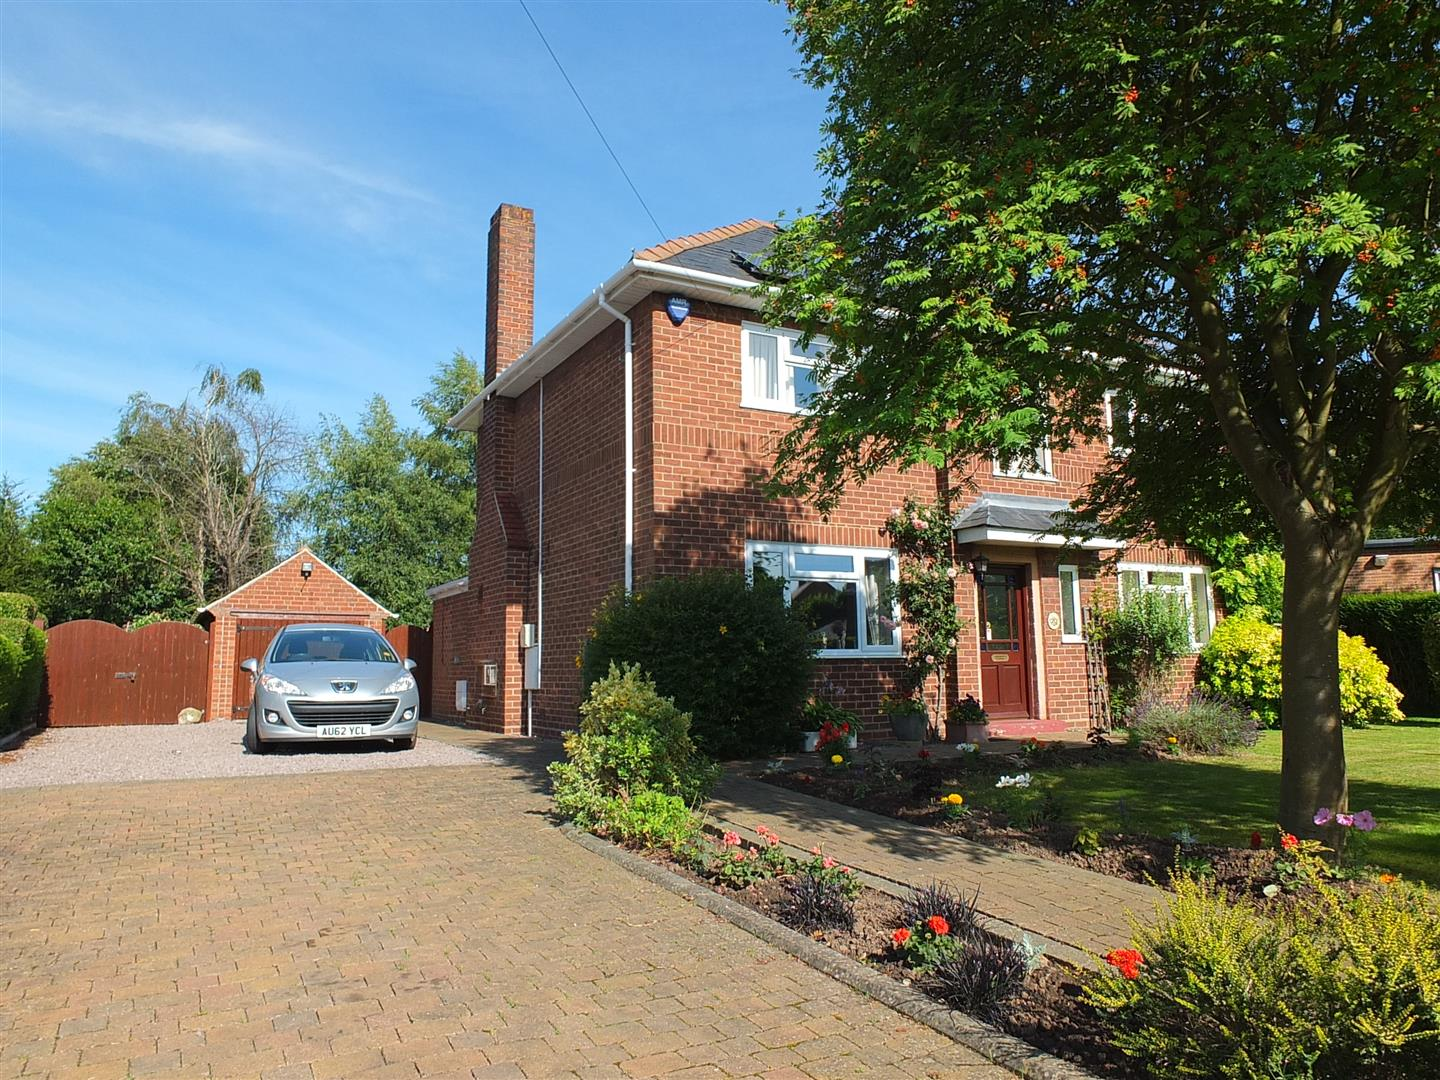 4 bed detached house for sale in Long Sutton Spalding, PE12 9HB 0